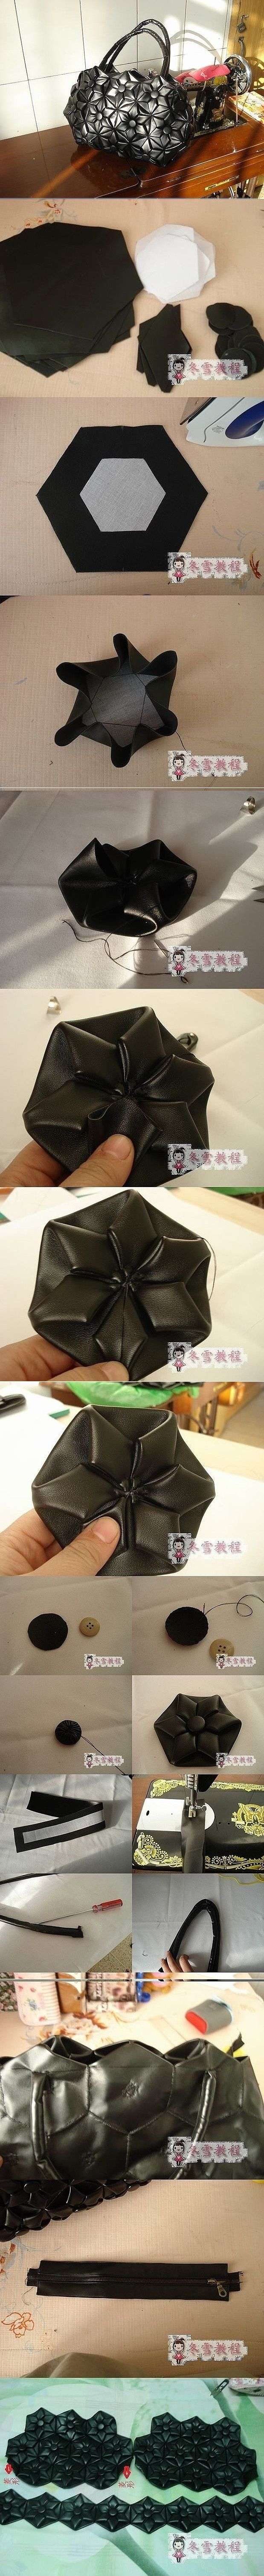 Leather bag origami (Diy) / Handbags, clutches, bags / SECOND STREET